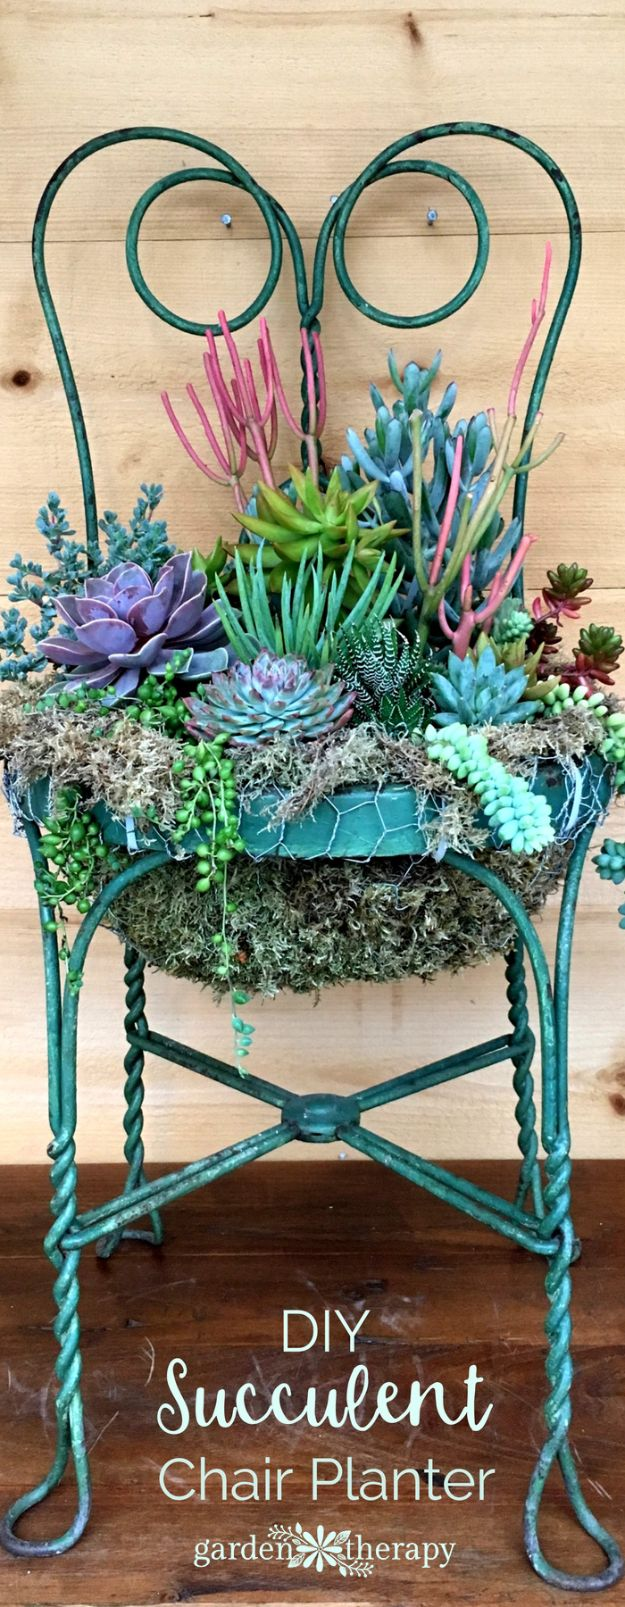 Container Gardening Ideas - Succulent Chair Planter - Easy Garden Projects for Containers and Growing Plants in Small Spaces - DIY Potting Tips and Planter Boxes for Vegetables, Herbs and Flowers - Simple Ideas for Beginners -Shade, Full Sun, Pation and Yard Landscape Idea tutorials http://diyjoy.com/container-gardening-ideas